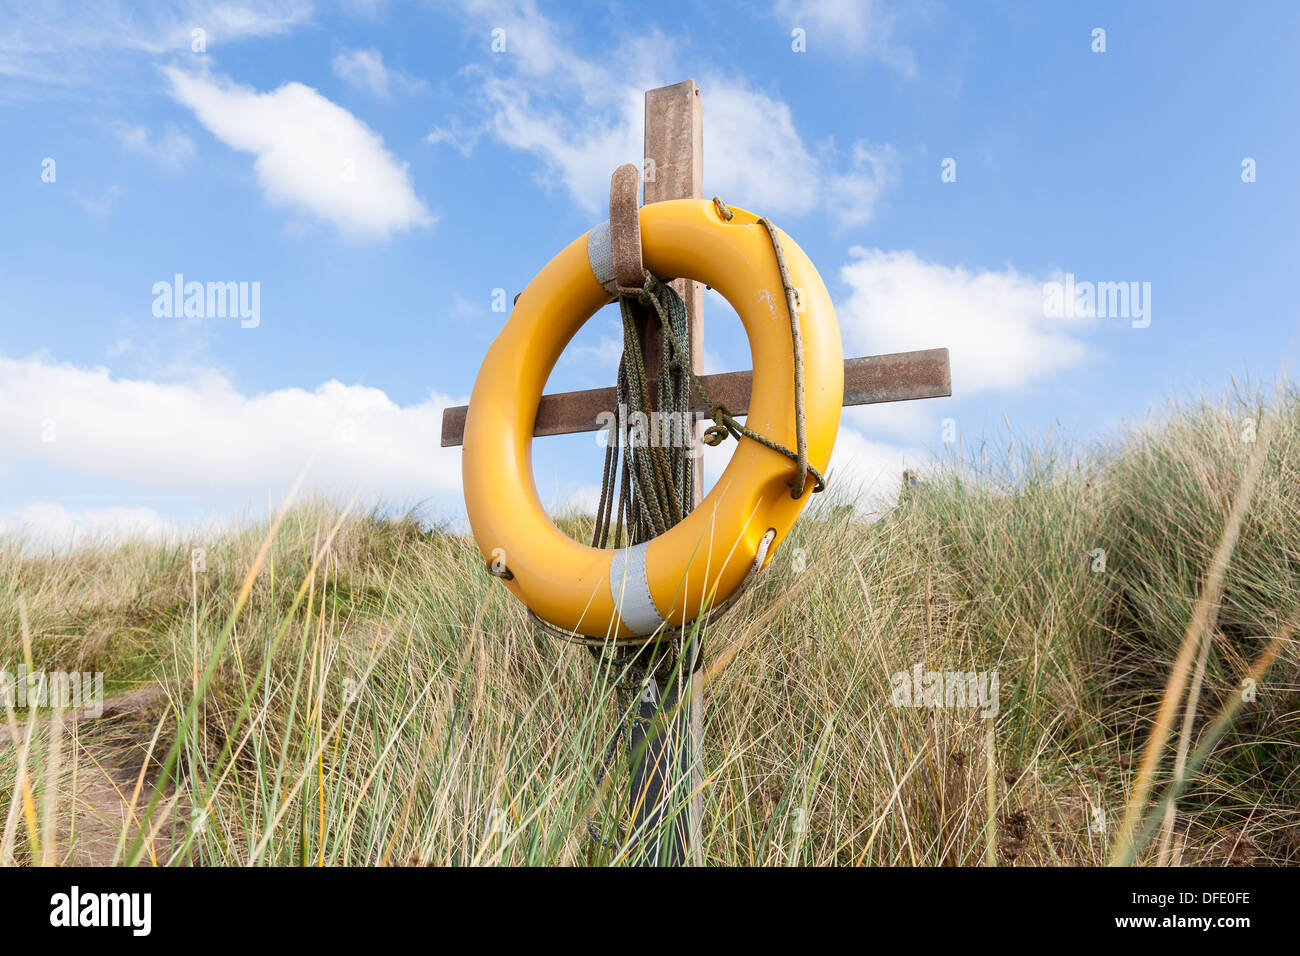 A yellow lifebuoy on a wooden stand in the dunes on a beach in Devon, England. Horizontal format. - Stock Image